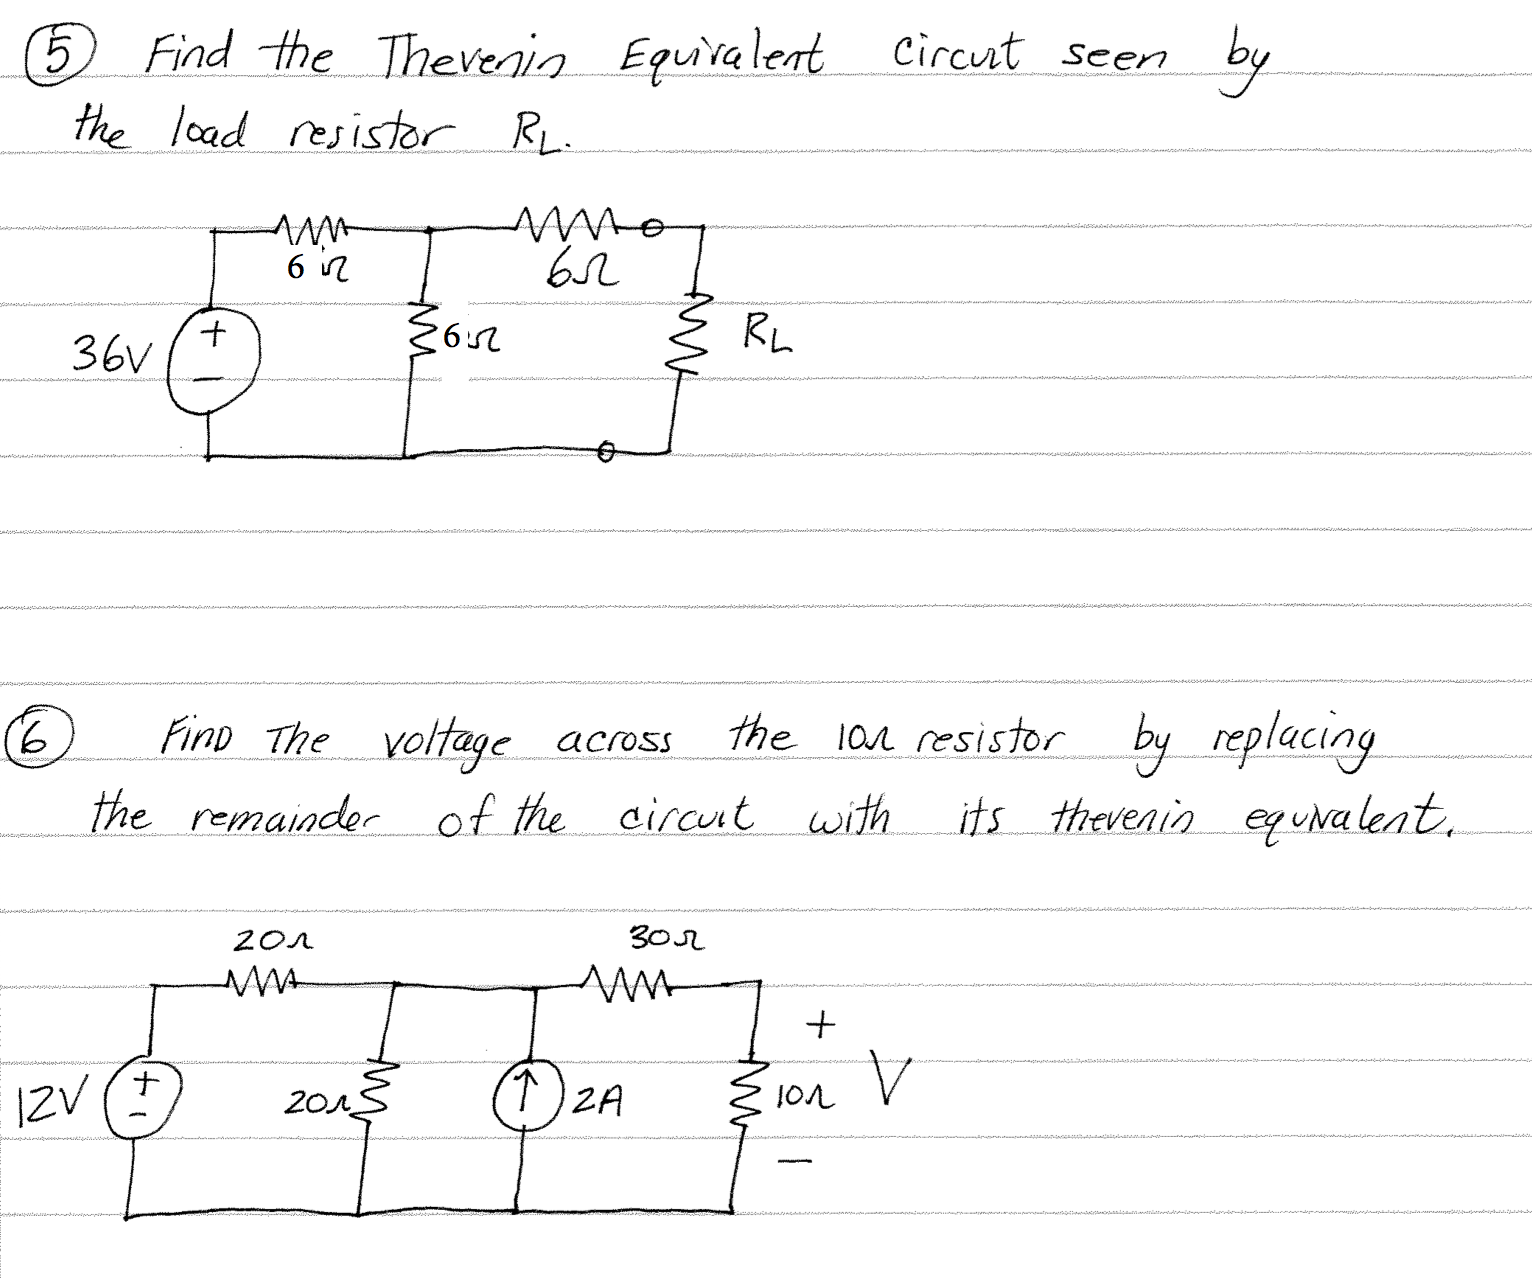 Equivalent IC | All About Circuits